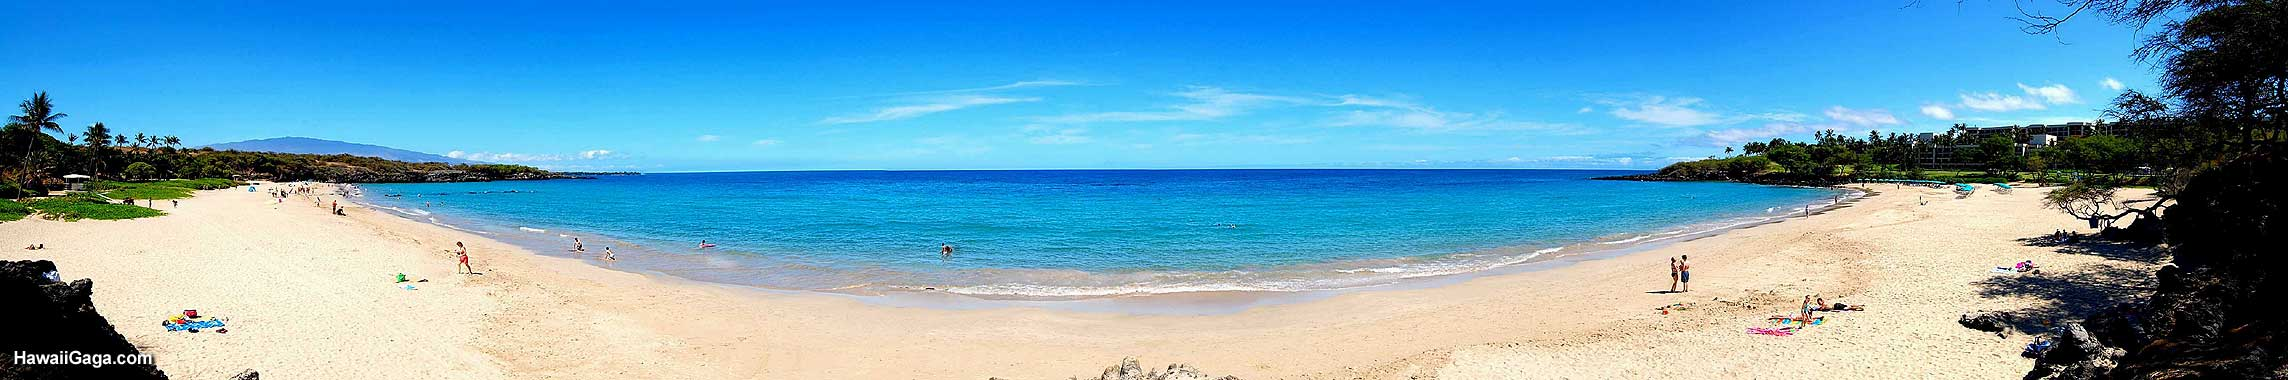 Hapuna Beach panorama